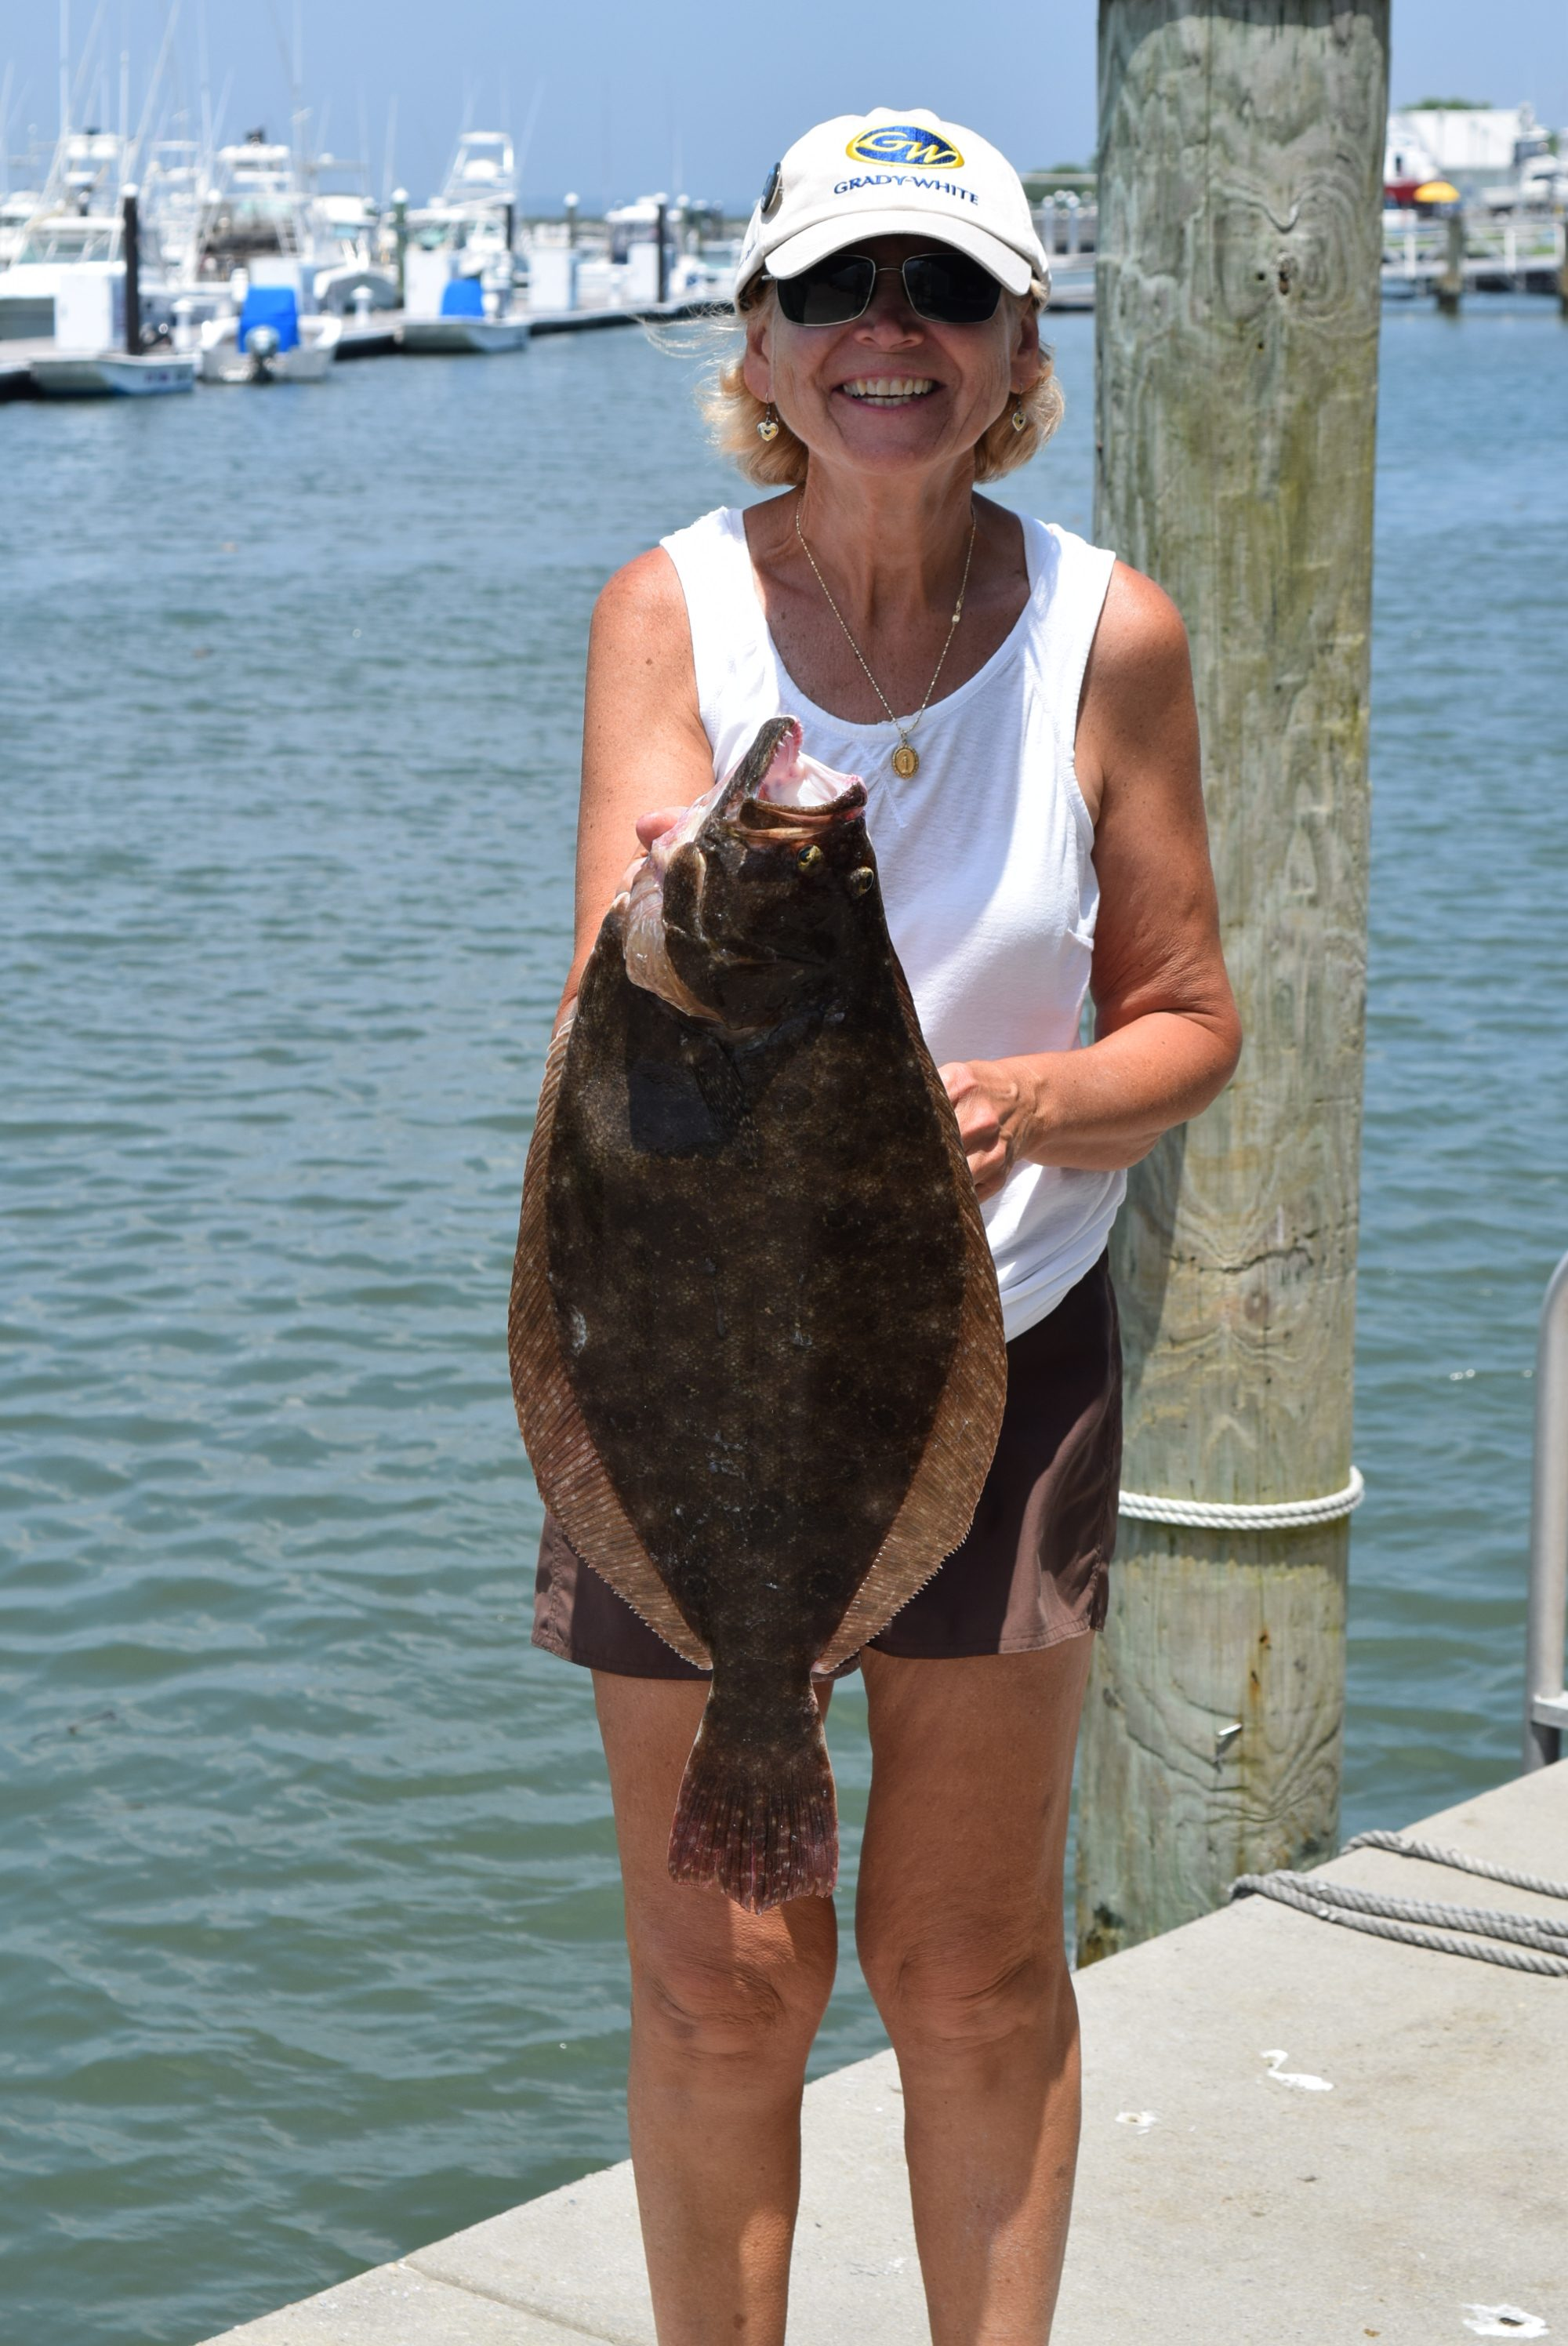 Fishing report 7 3 2016 indian river marina state of for De fishing report